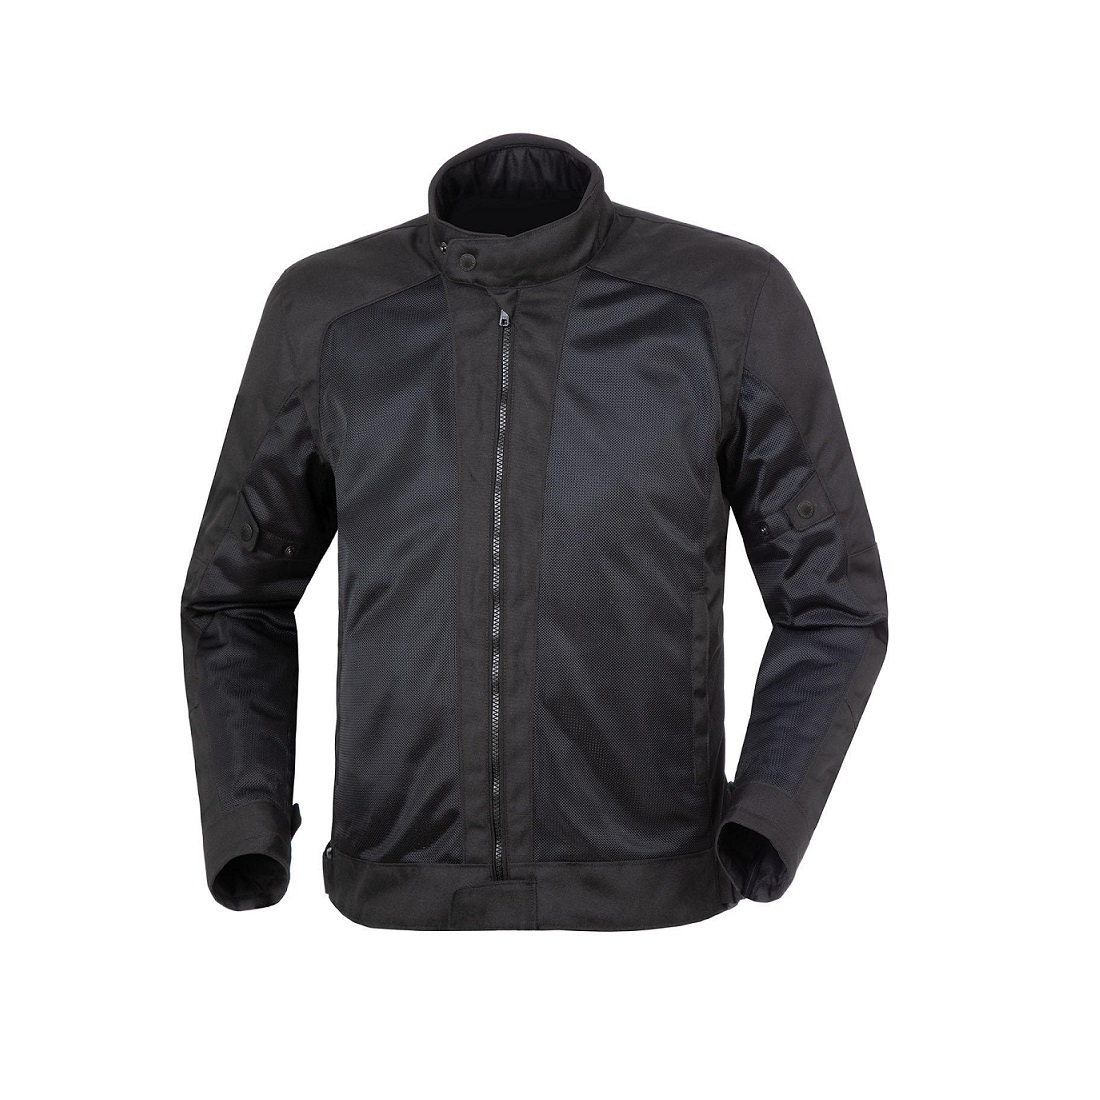 TUCANO URBANO - JACKET NETWORK 2G - BLACK